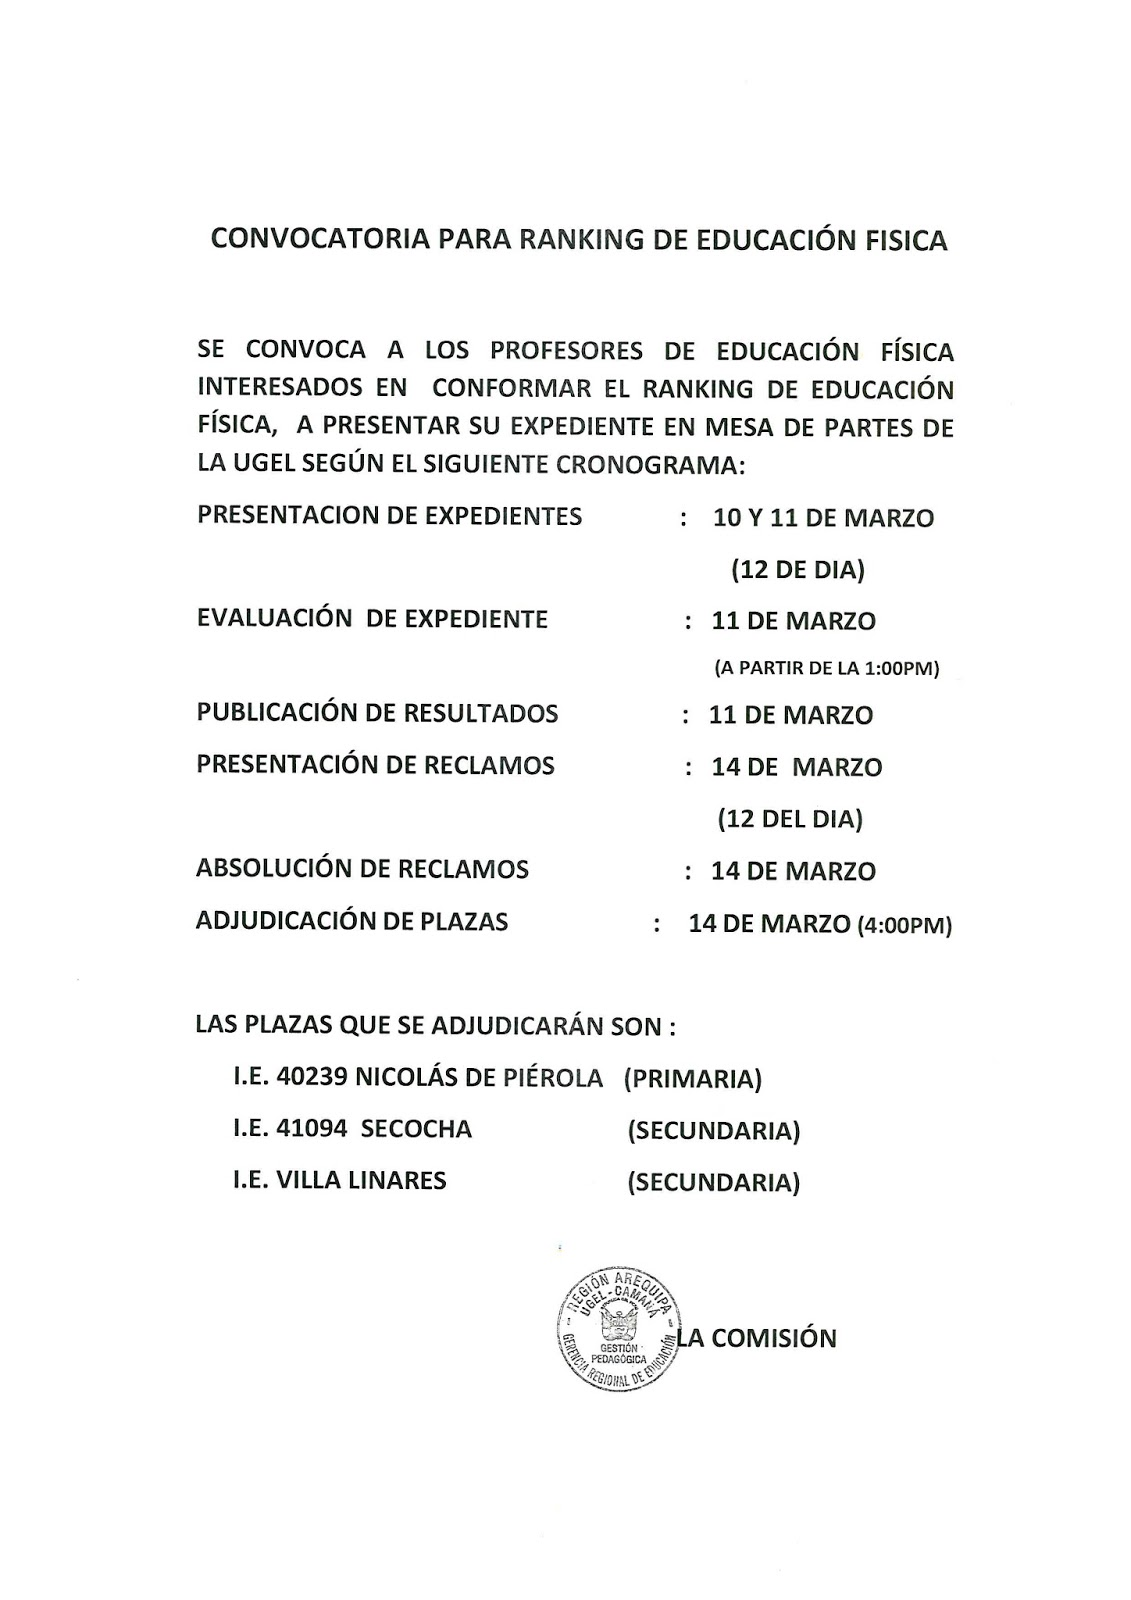 Convocatoria para plaza de educaci n f sica ugel caman for Sep convocatoria plazas 2016